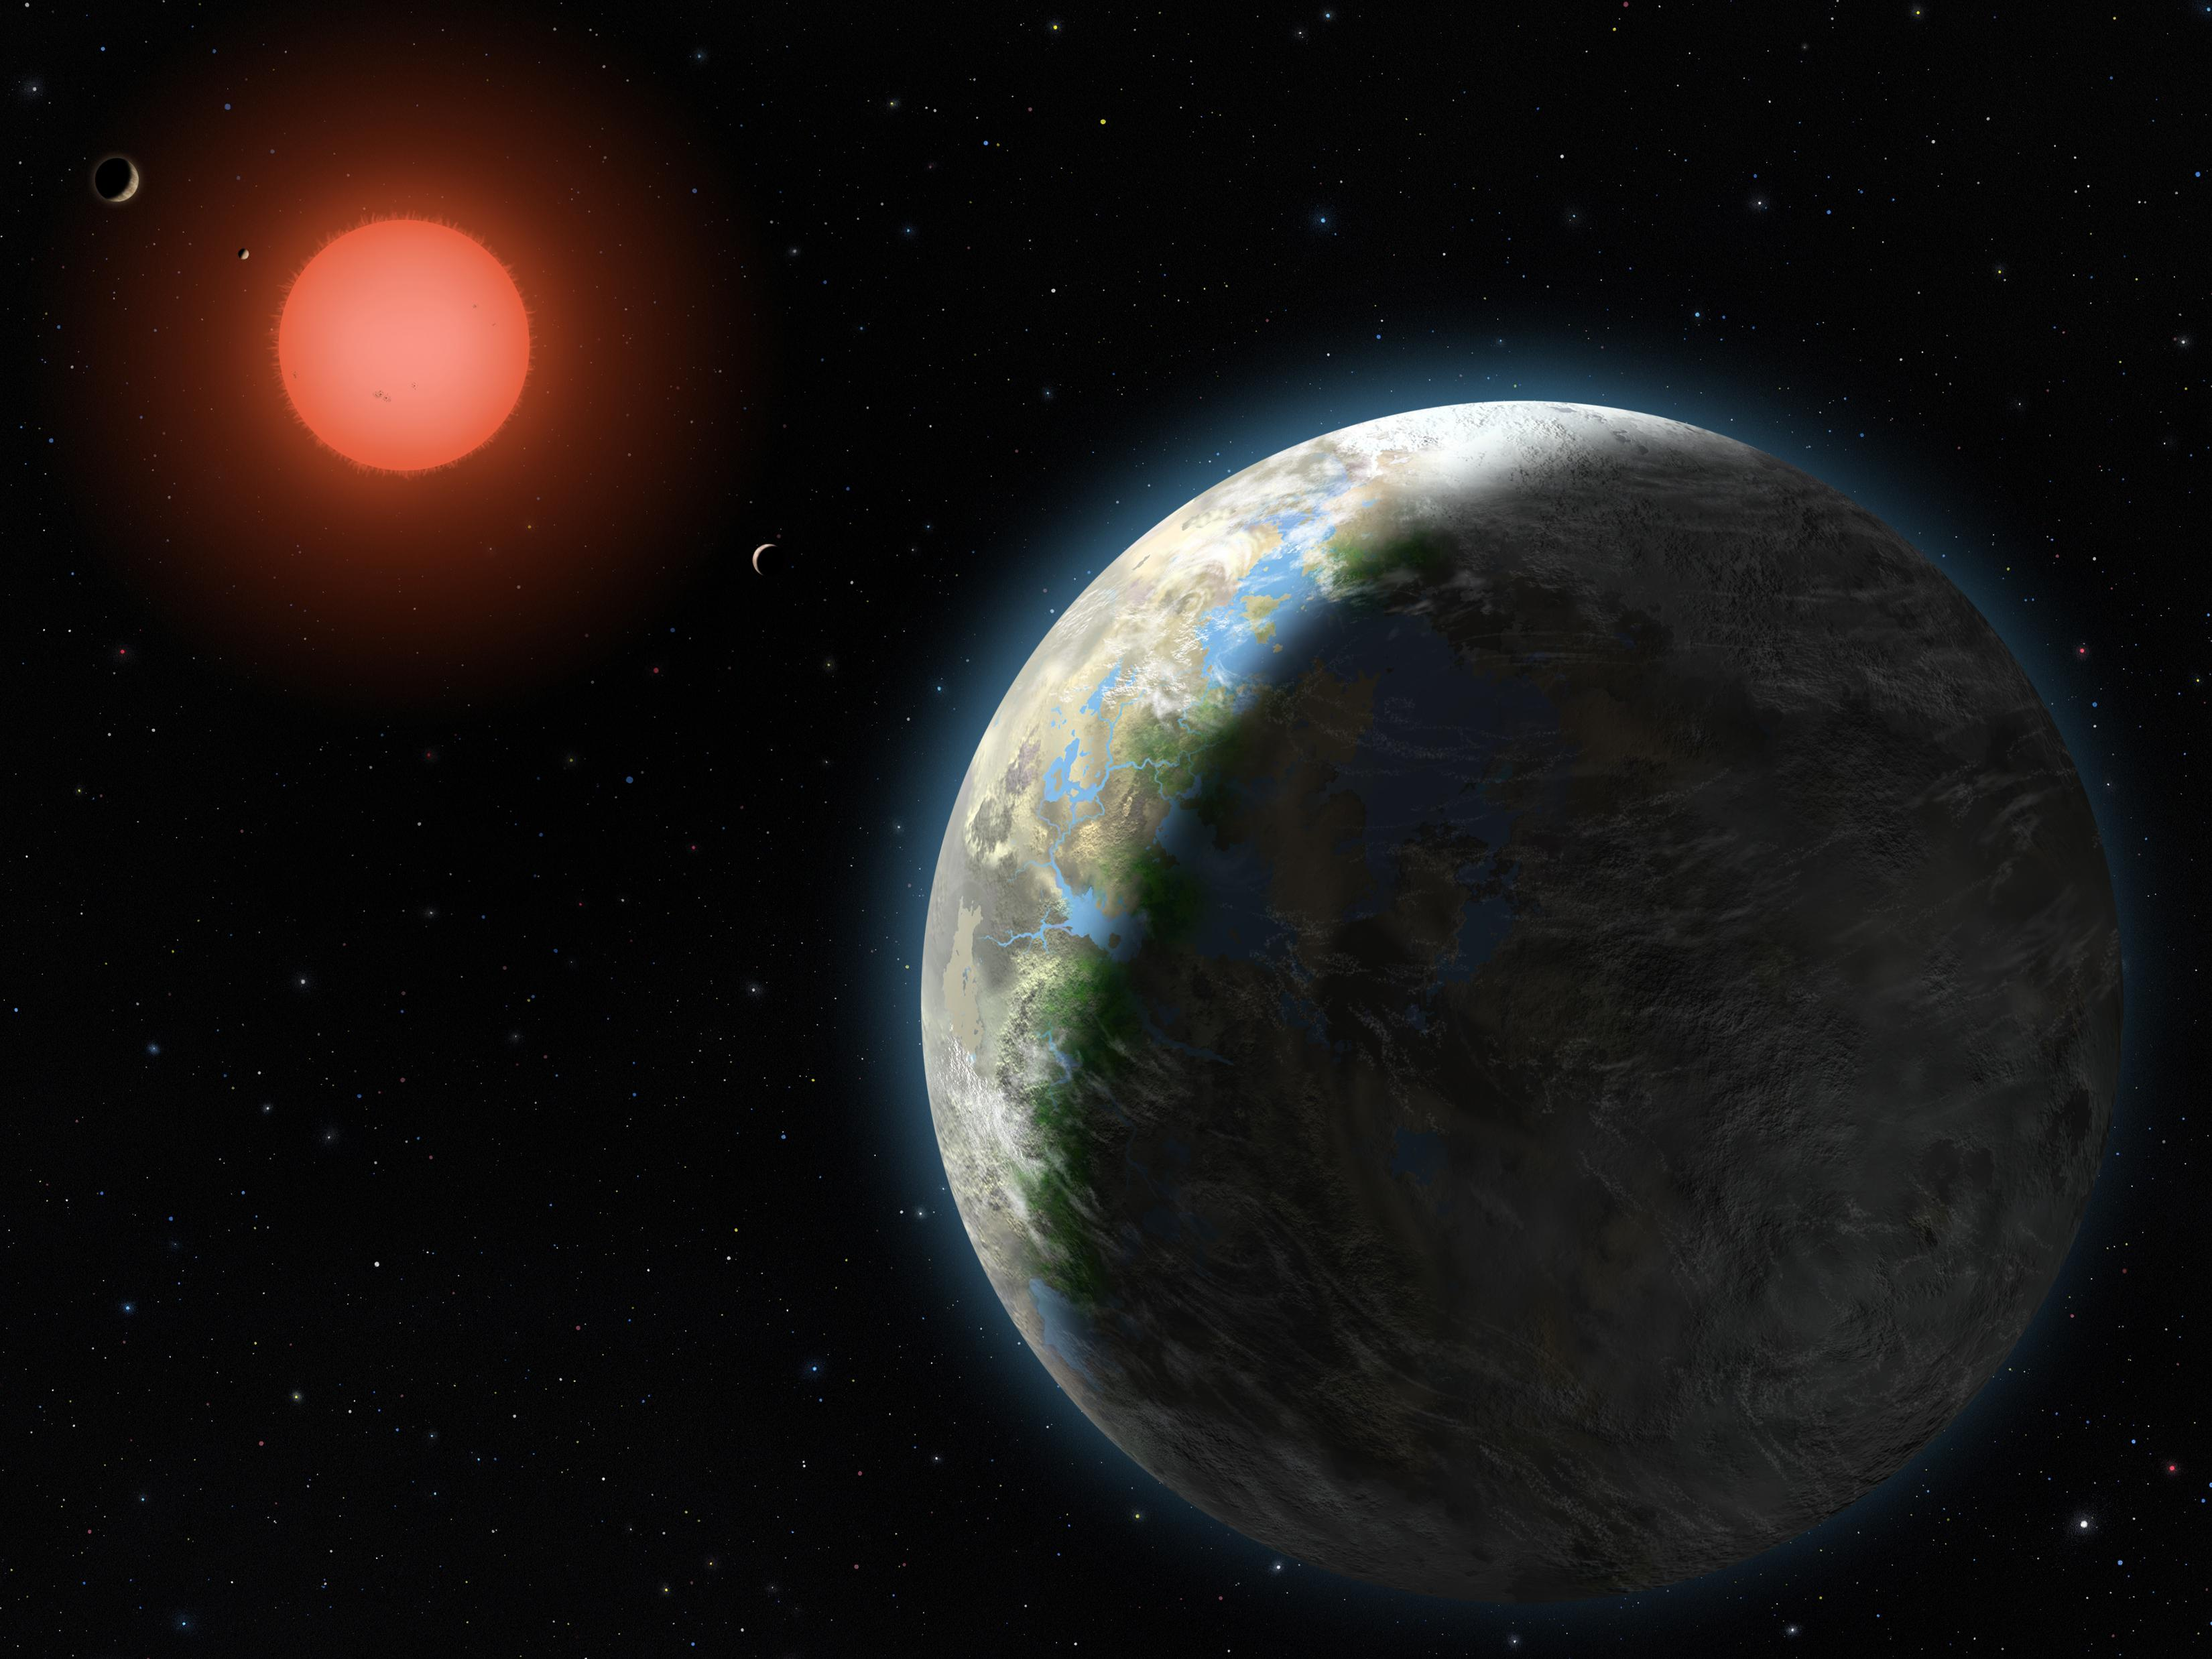 NASA - Planets of the Gliese 581 System